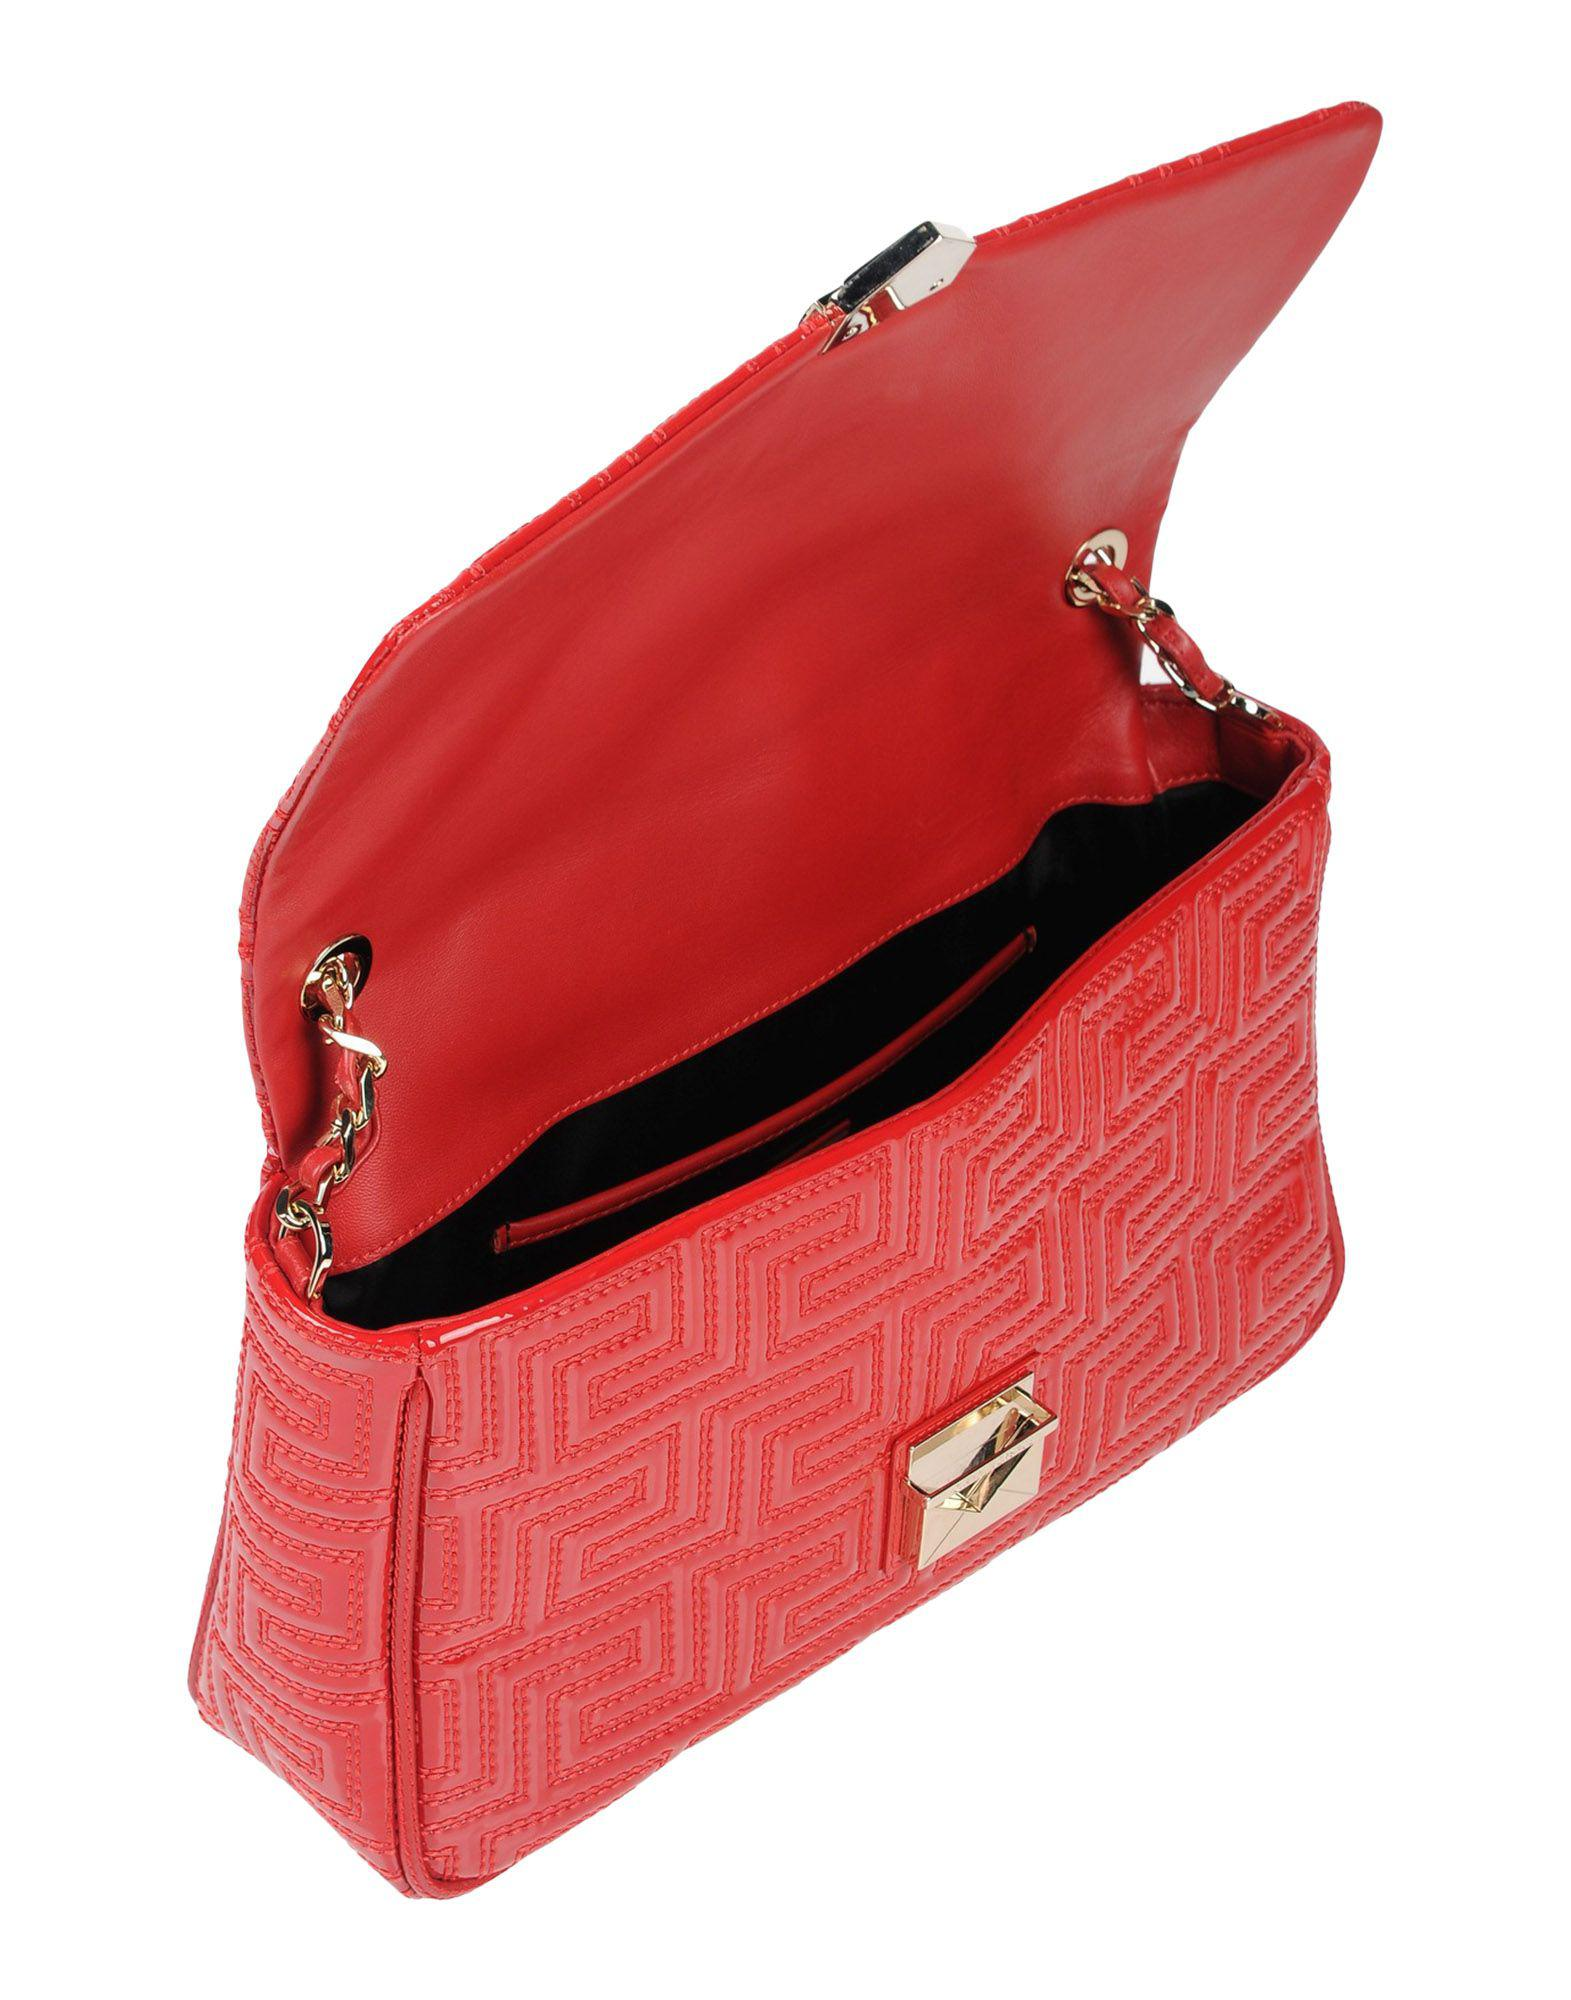 440990a362 Gianni Versace Couture - Red Handbags - Lyst. View fullscreen